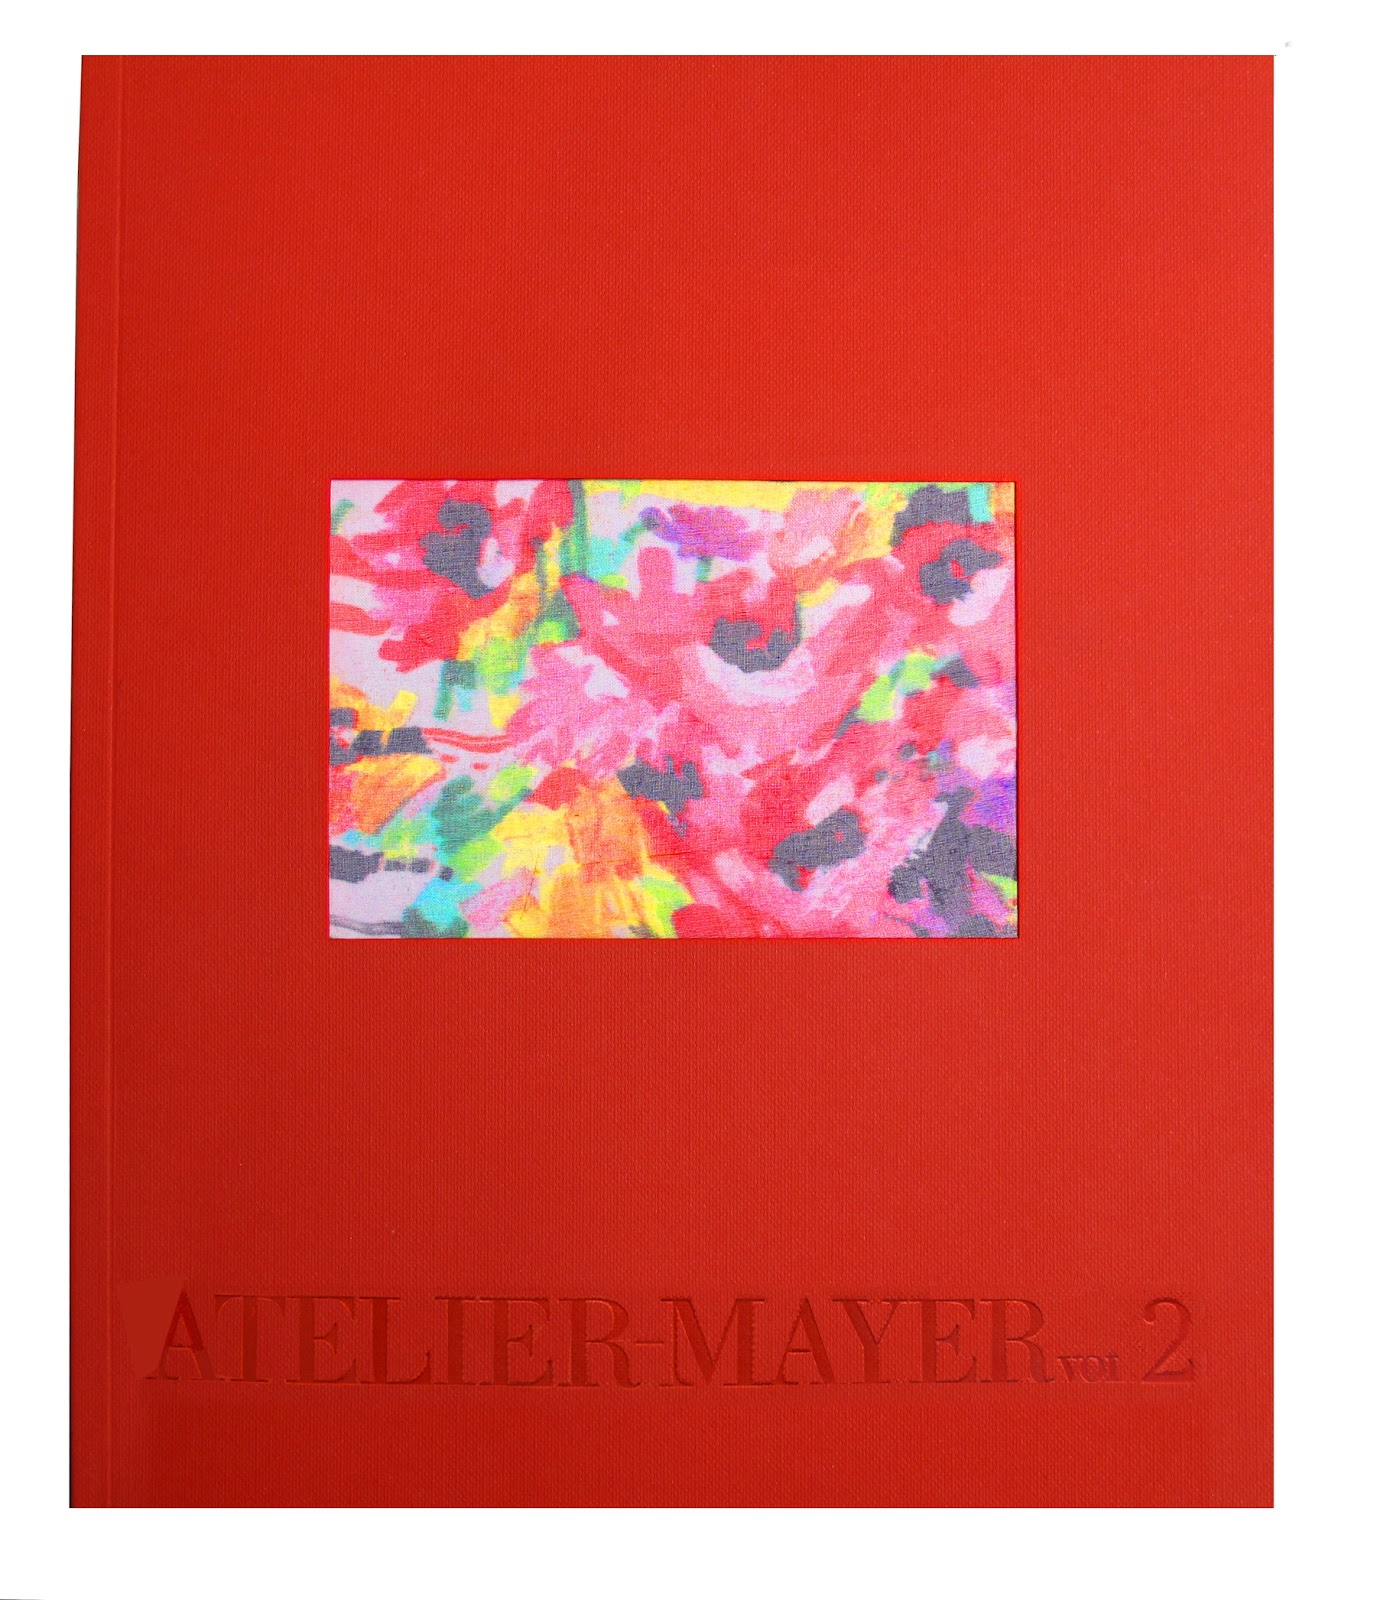 Atelier-Mayer+Mag+Vol2+Front+Cover.jpg